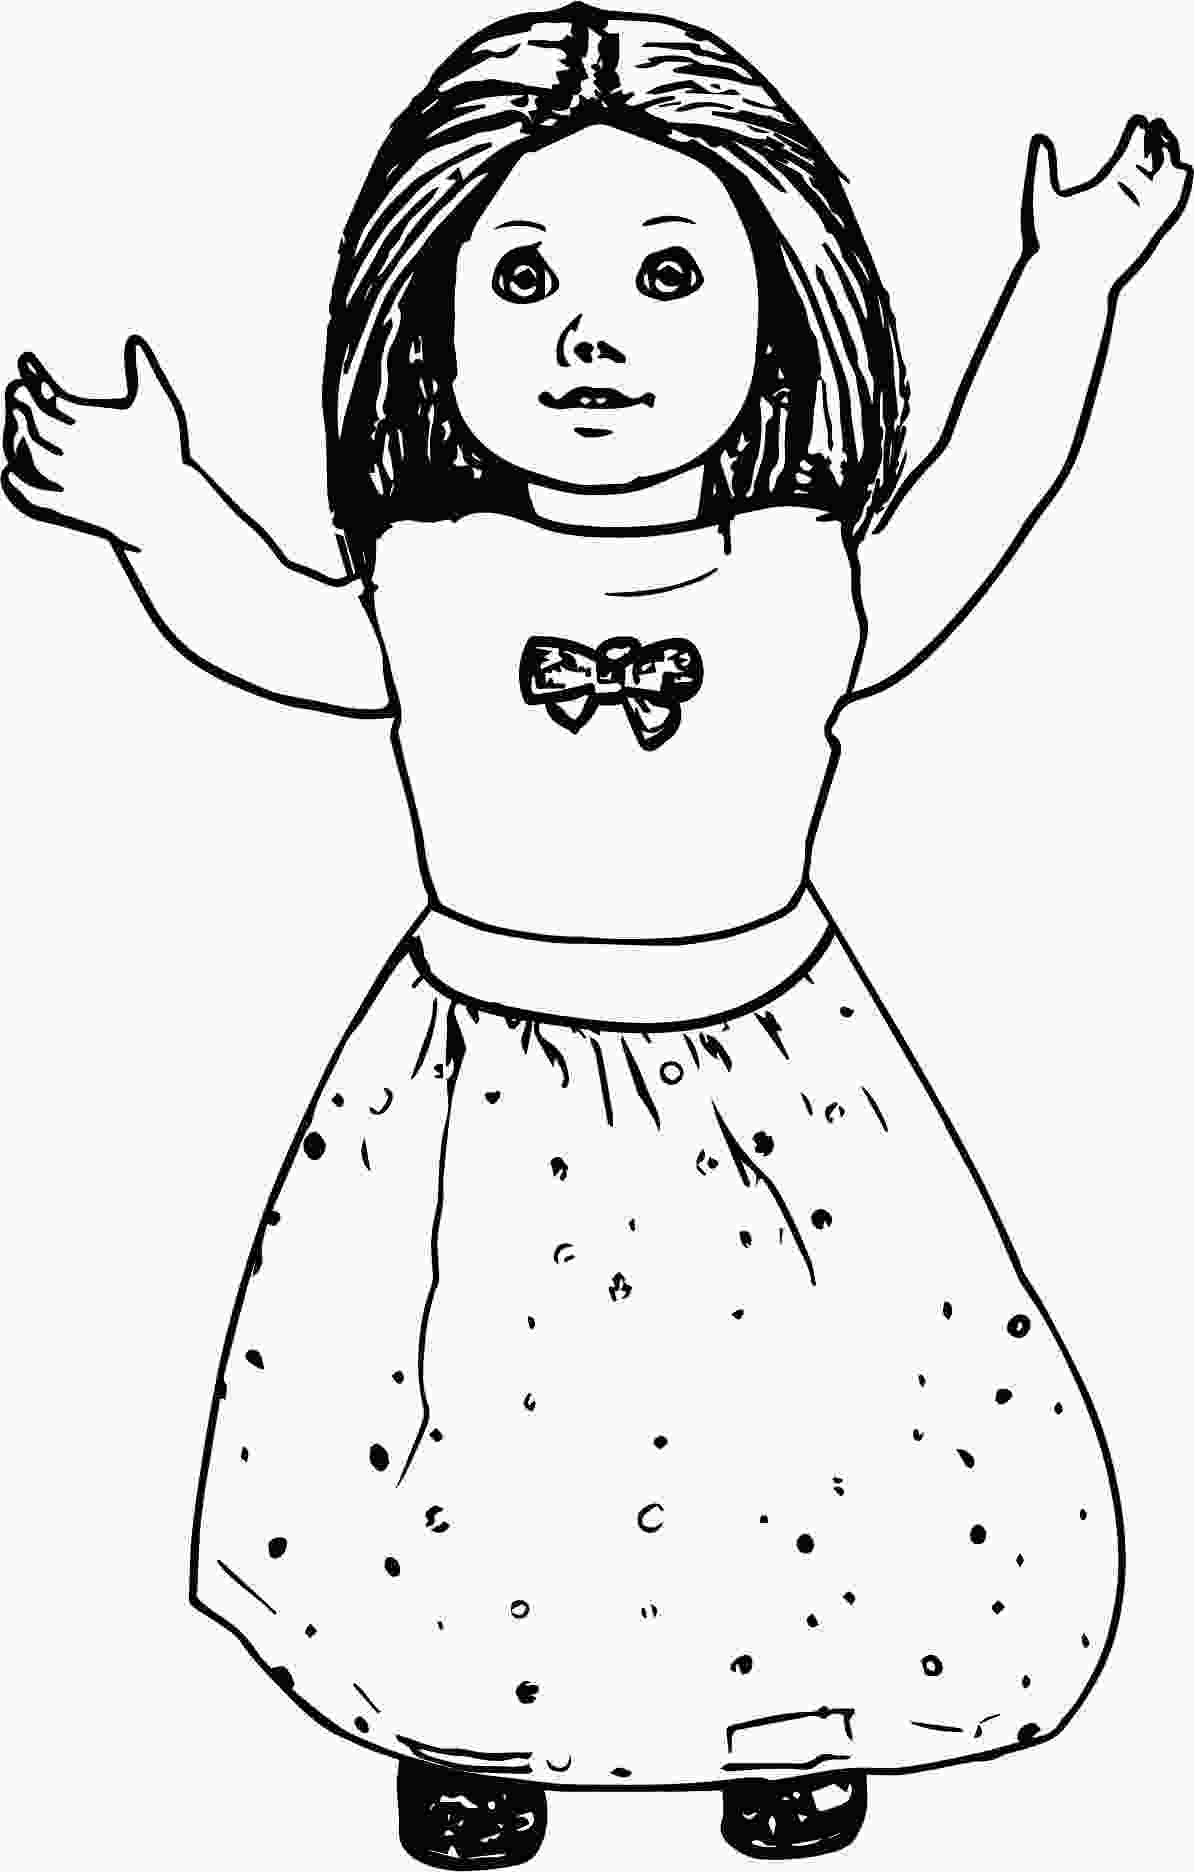 american girl pictures american girl doll toy coloring page wecoloringpagecom